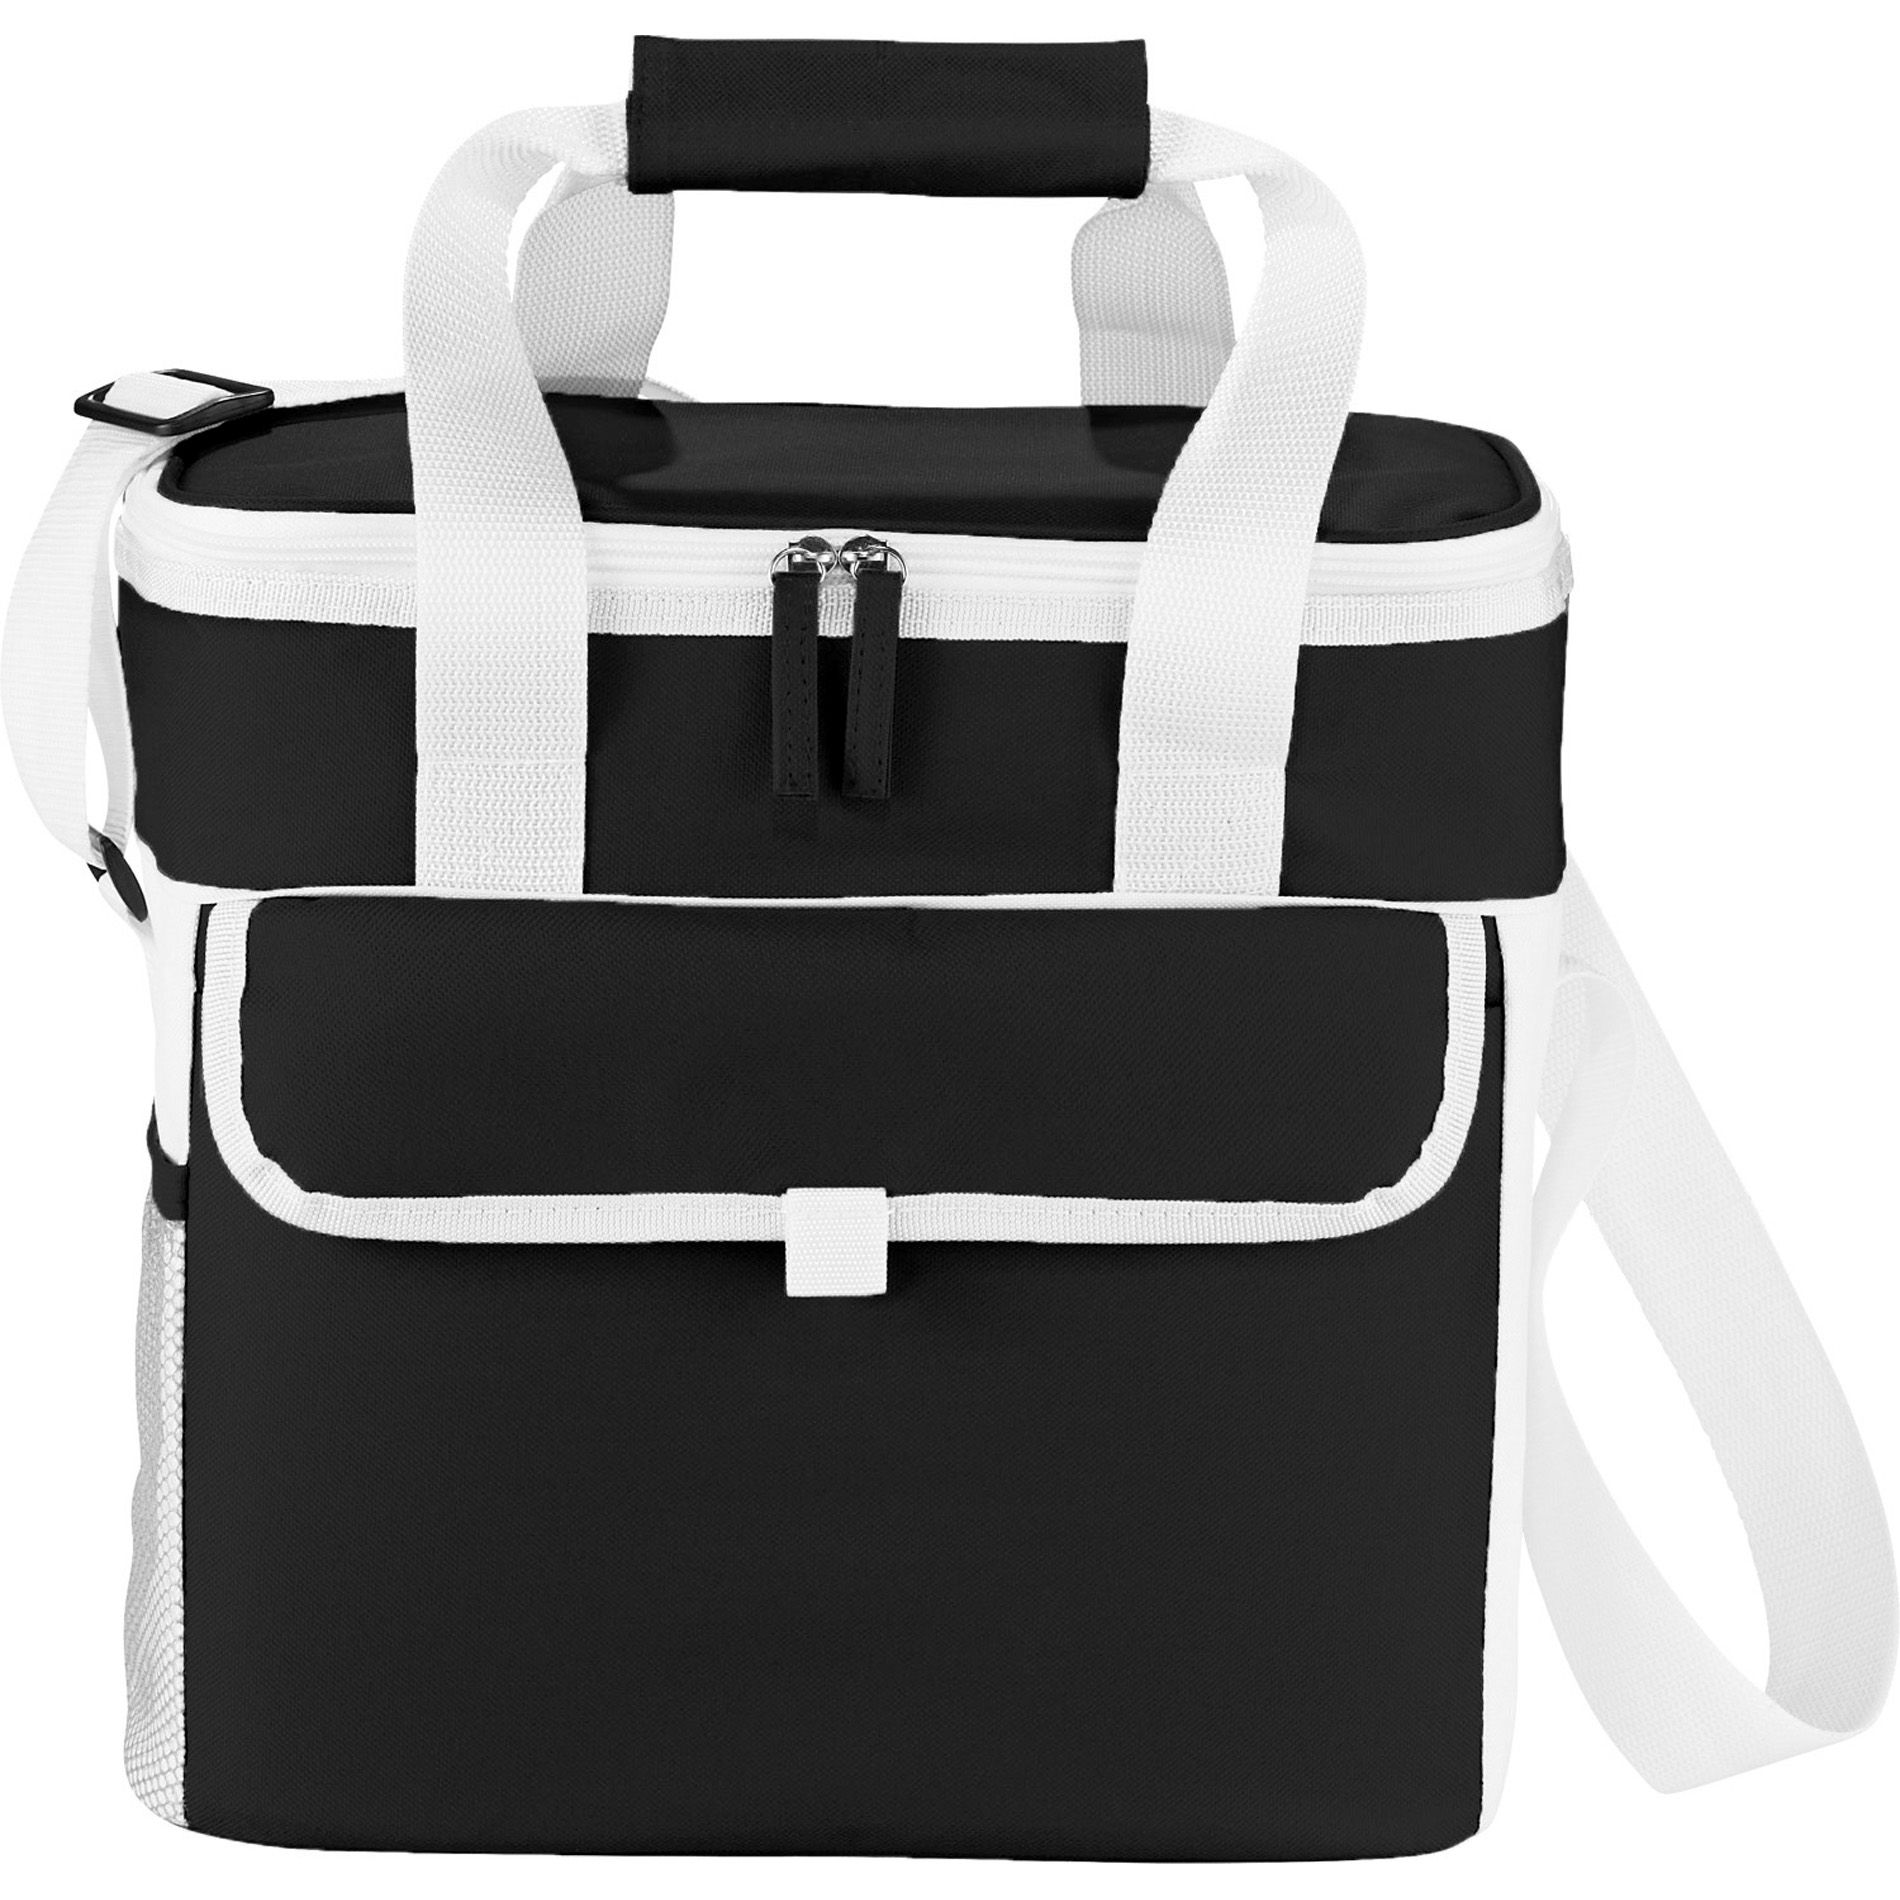 Game cooler bags - Game Day Sport Cooler